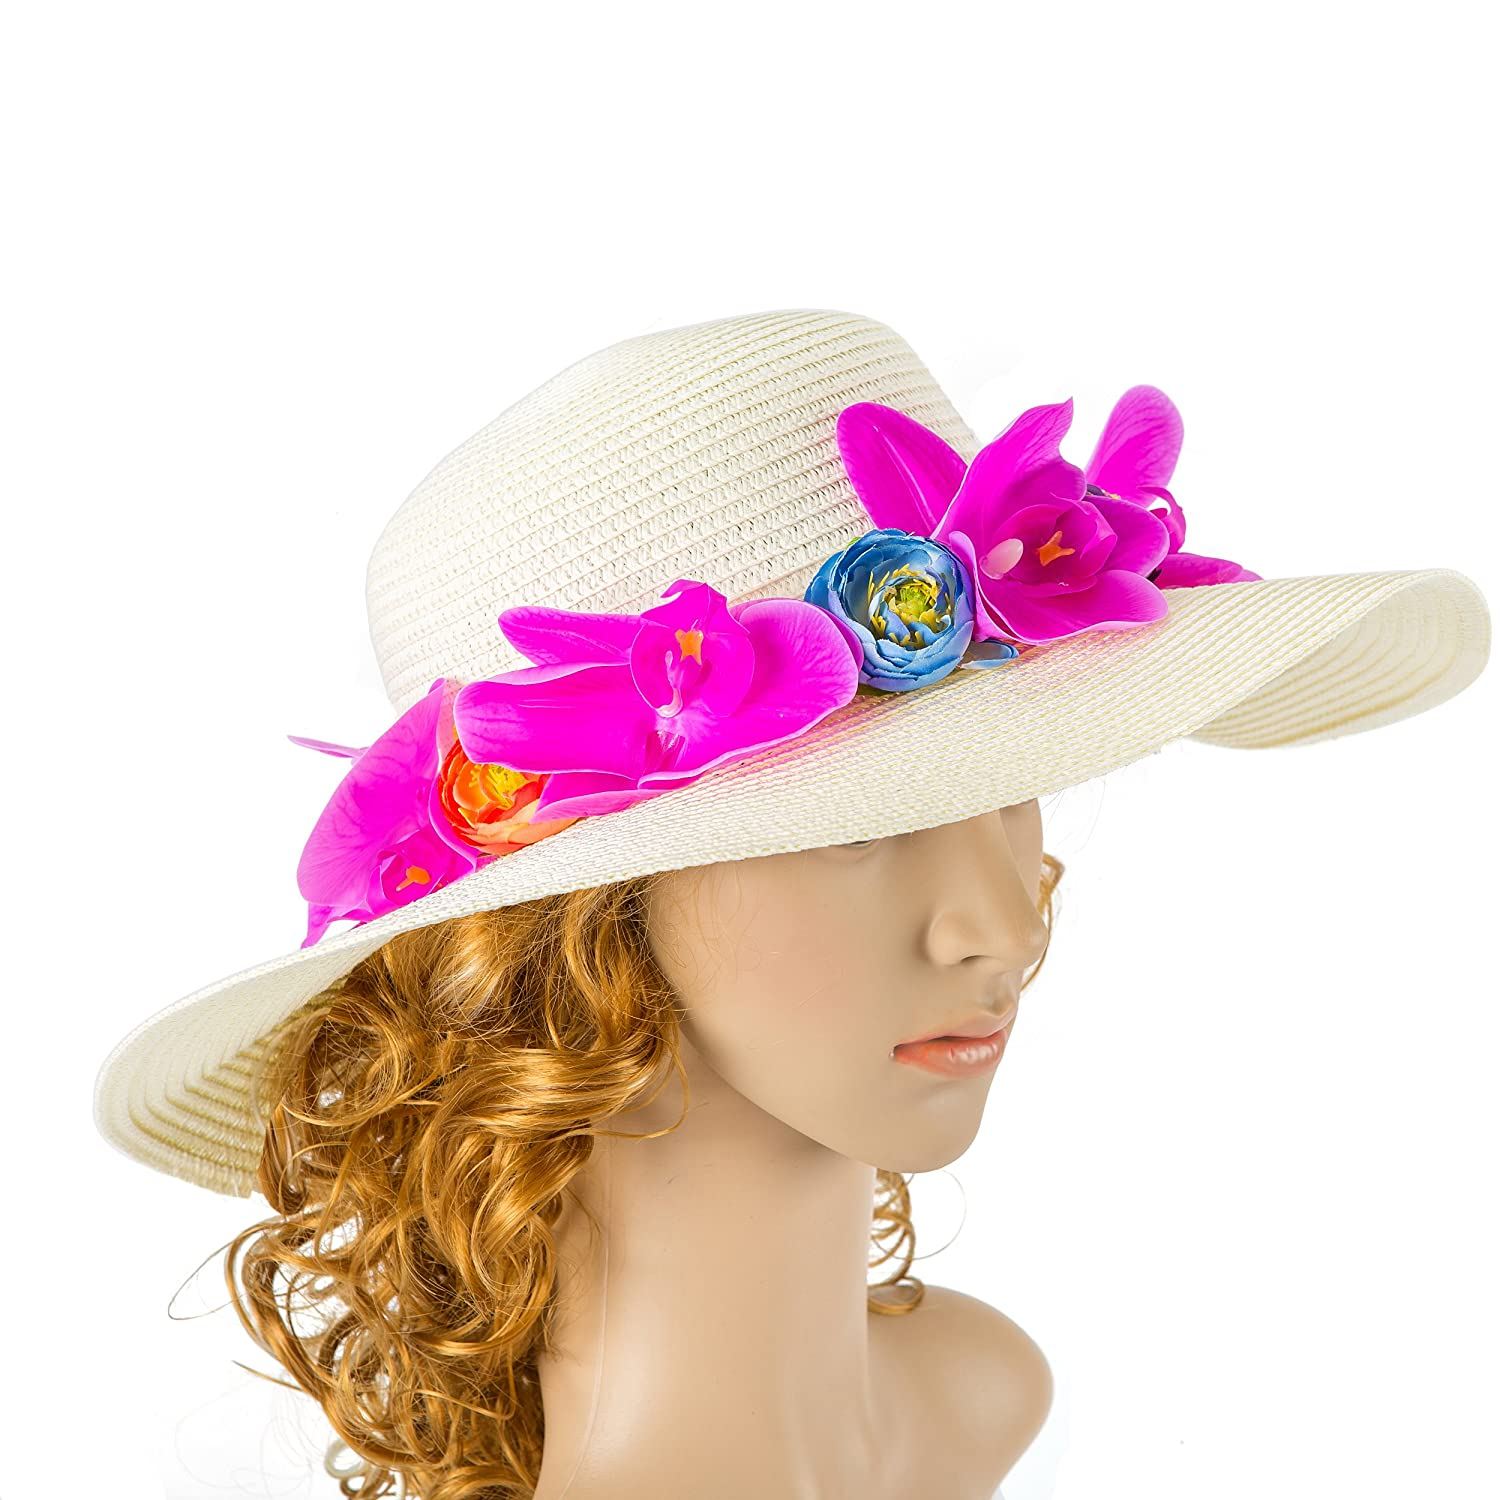 Off White Wedding Hat with orchid Flower and Bow Kentucky Derby Hat Wedding Accessory Cocktail Hat Tea Party Hat